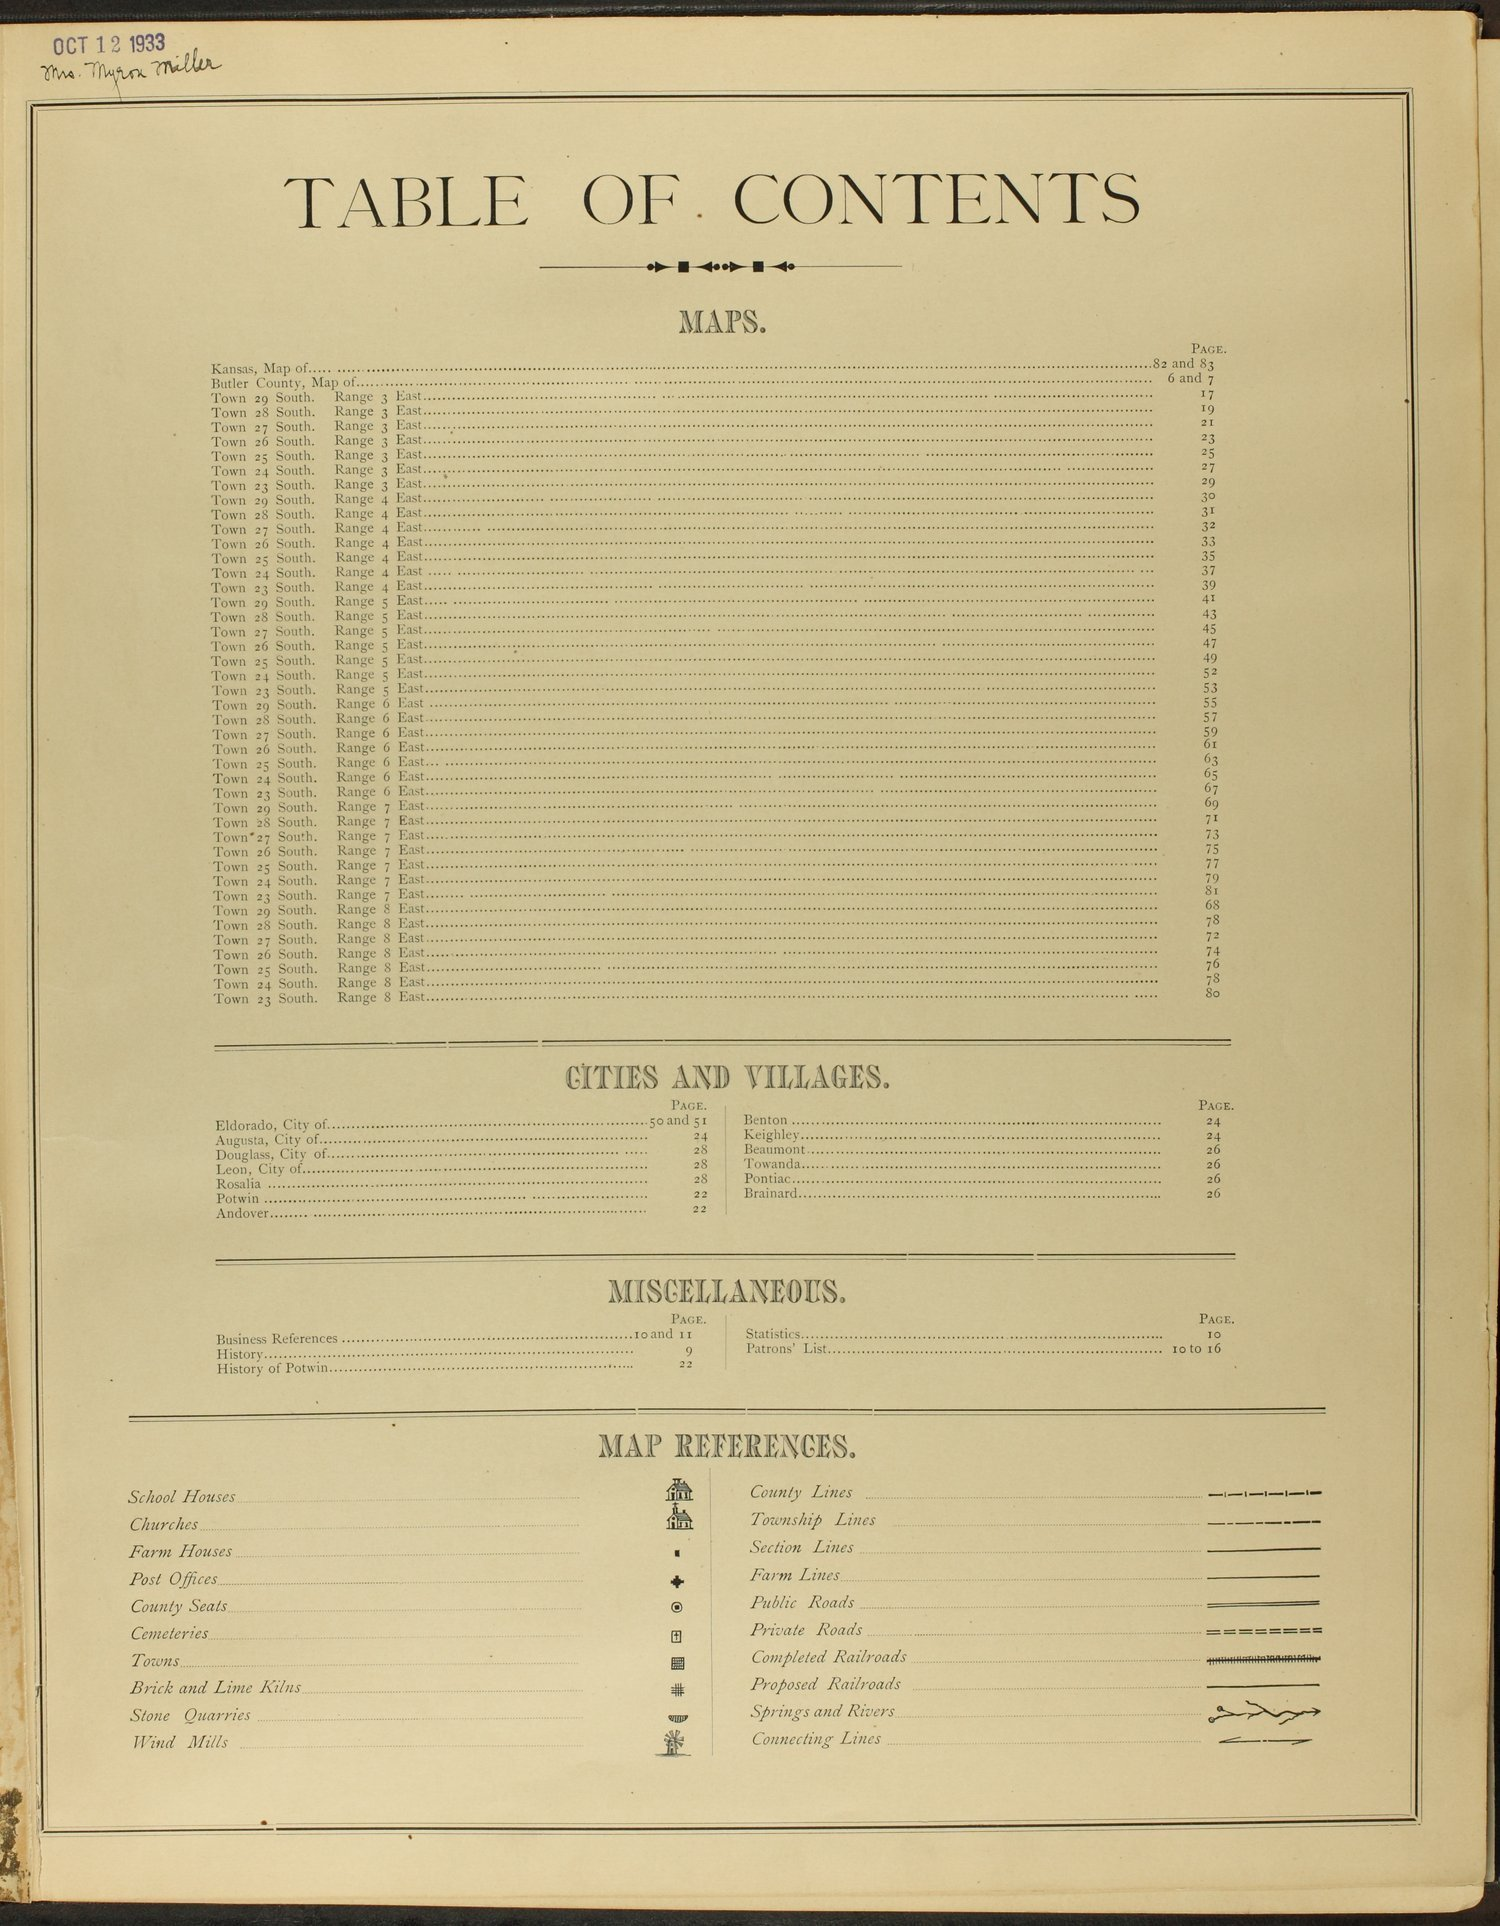 Historical atlas of Butler County, Kansas - Table of Contents